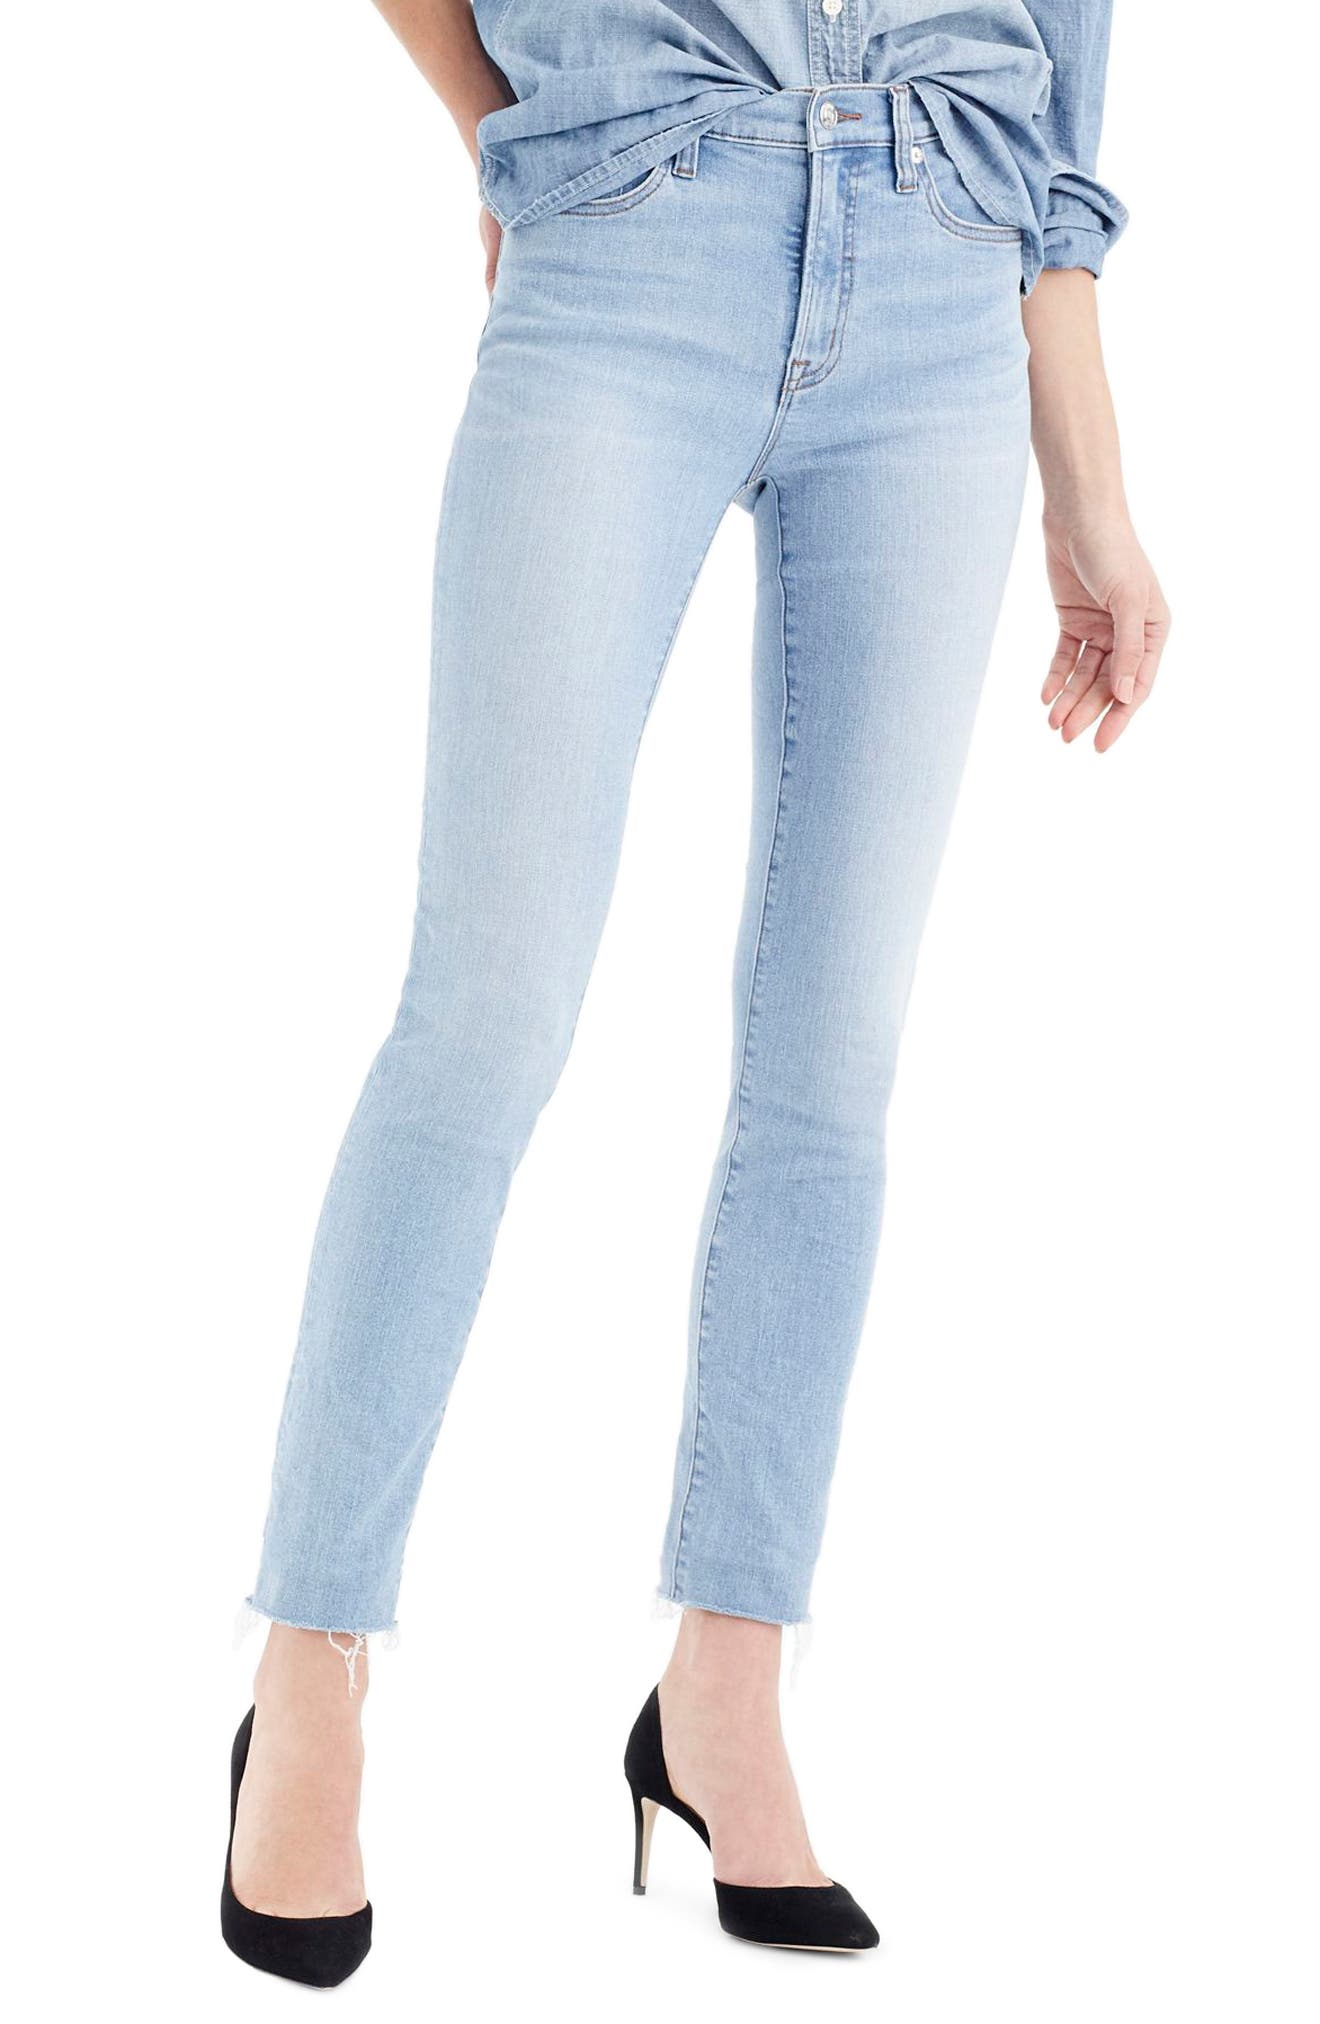 Main Image - J.Crew High Rise Toothpick Jeans (Wilkerson Wash)